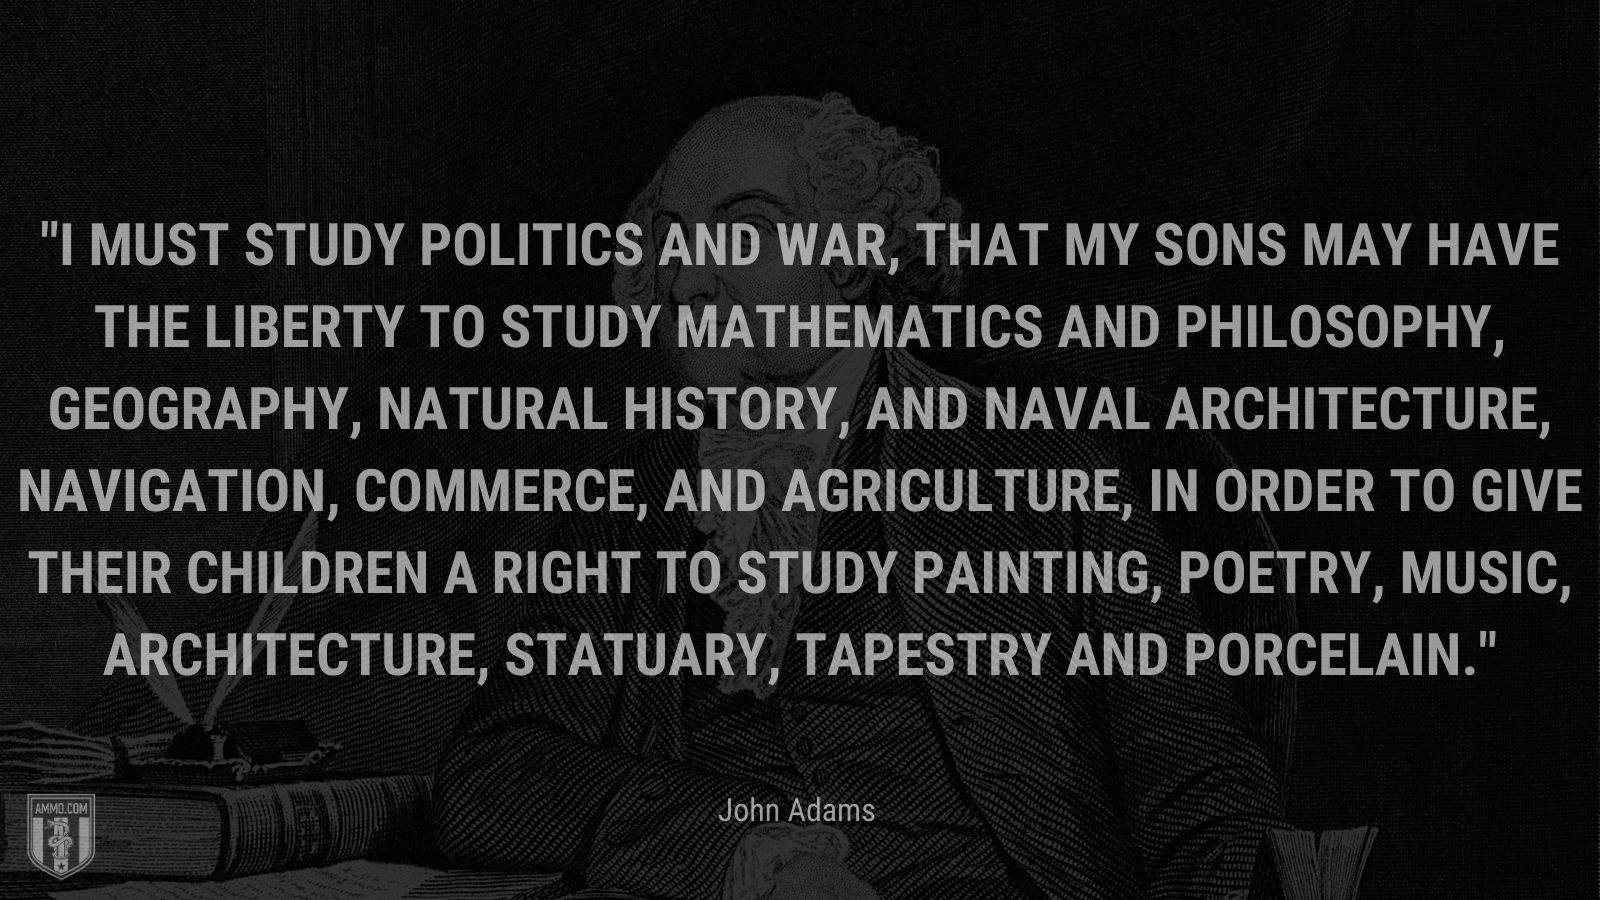 """""""I must study politics and war, that my sons may have the liberty to study mathematics and philosophy, geography, natural history, and naval architecture, navigation, commerce, and agriculture, in order to give their children a right to study painting, poetry, music, architecture, statuary, tapestry and porcelain."""" - John Adams"""